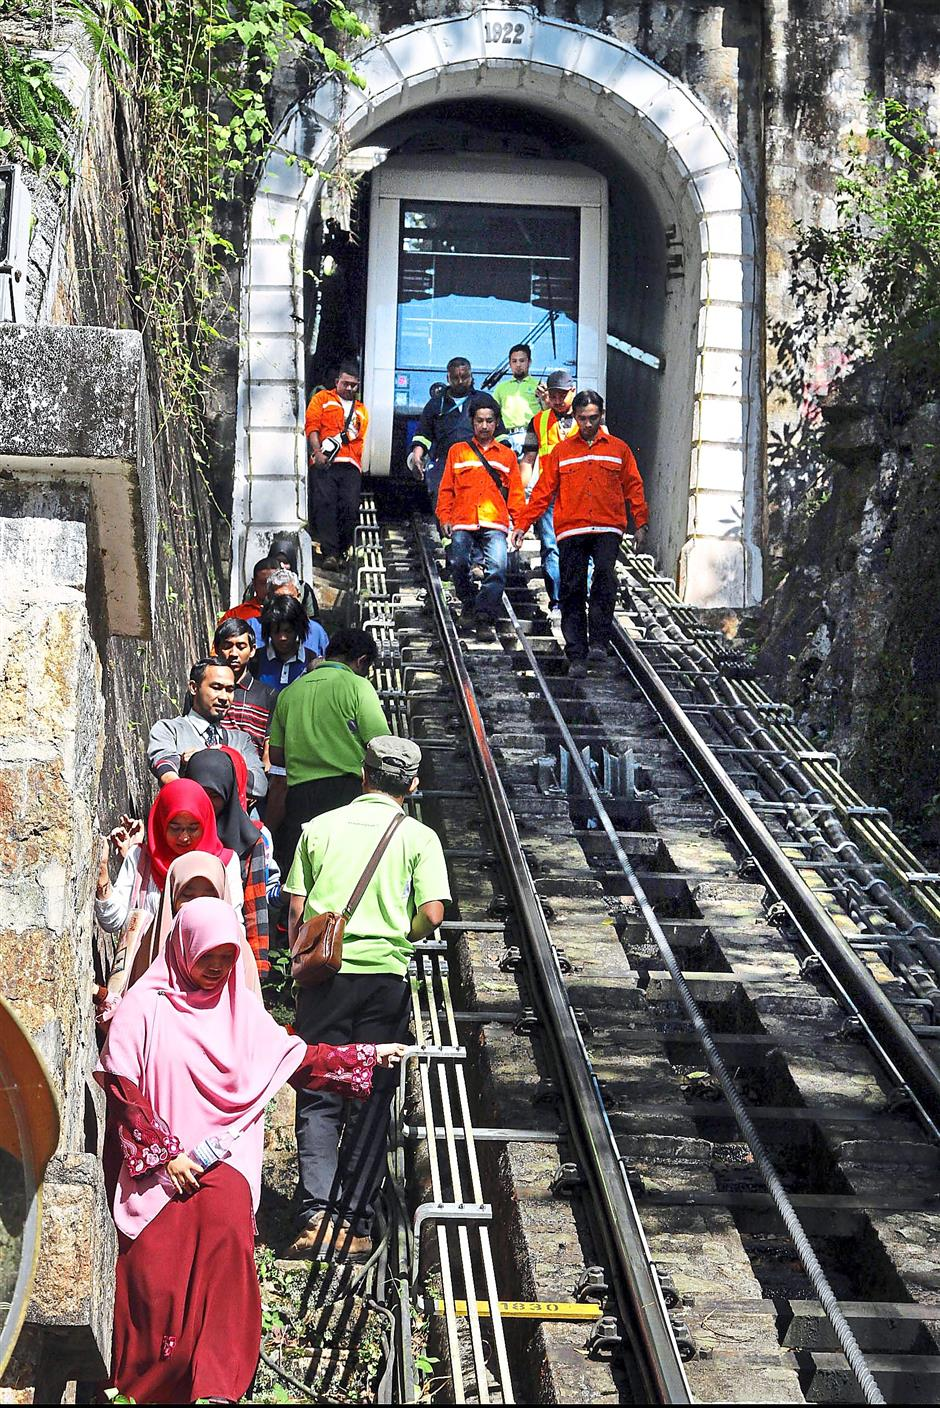 Long way down: Passengers taking the narrow staircase by the side of the funicular railway tracks at Penang Hill.